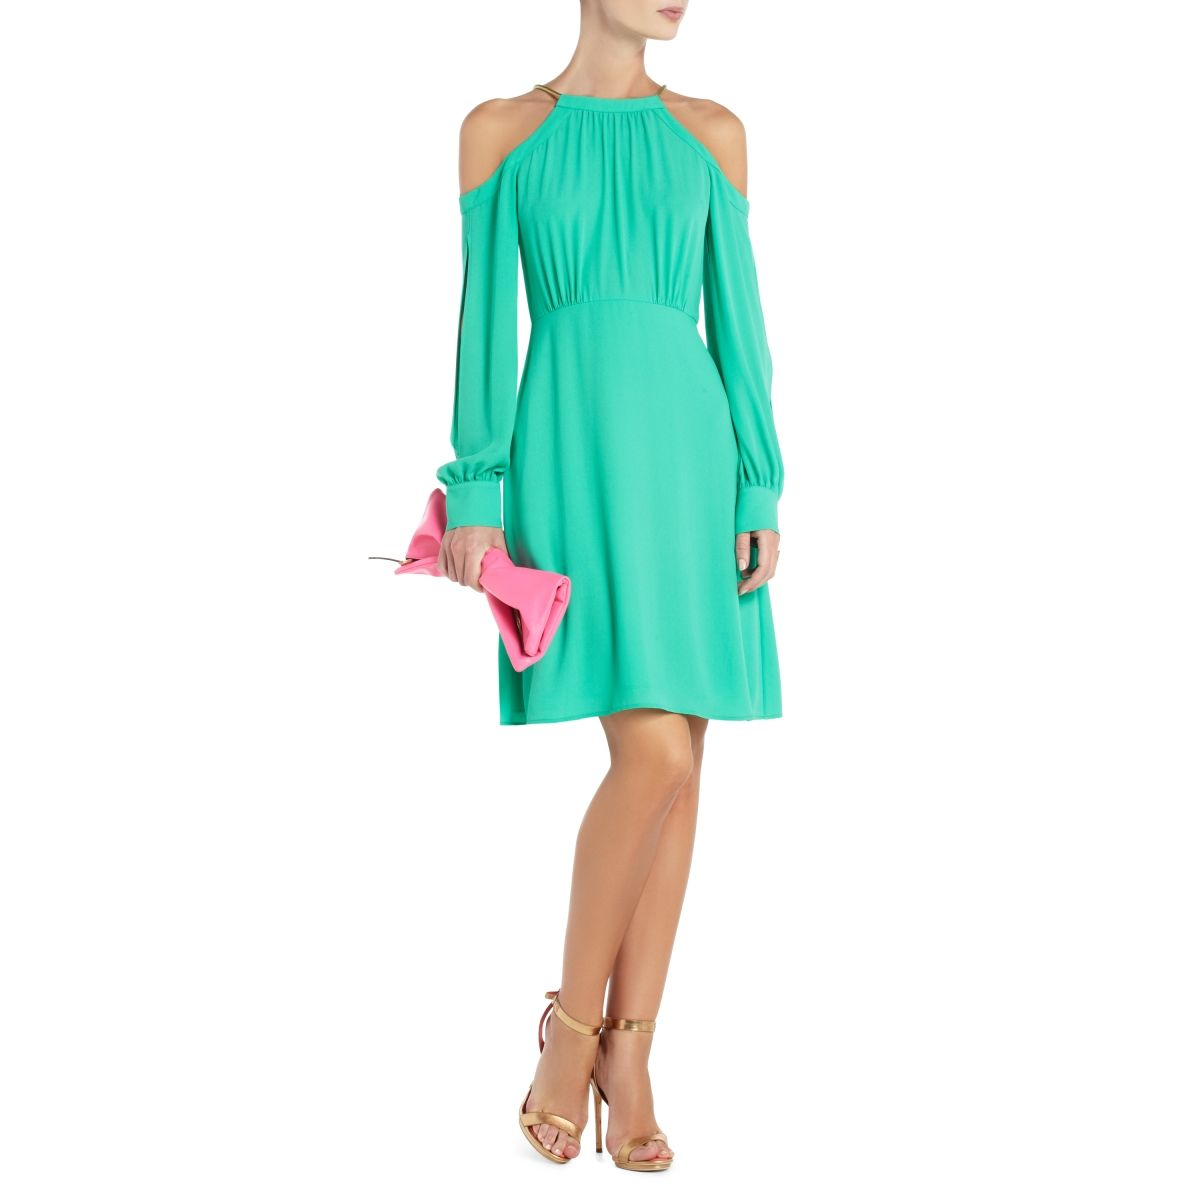 a848463ad0 BCBGMAXAZRIA - SHOP BY CATEGORY  DRESSES  VIEW ALL  LILLIE OPEN-SHOULDER  COCKTAIL DRESS